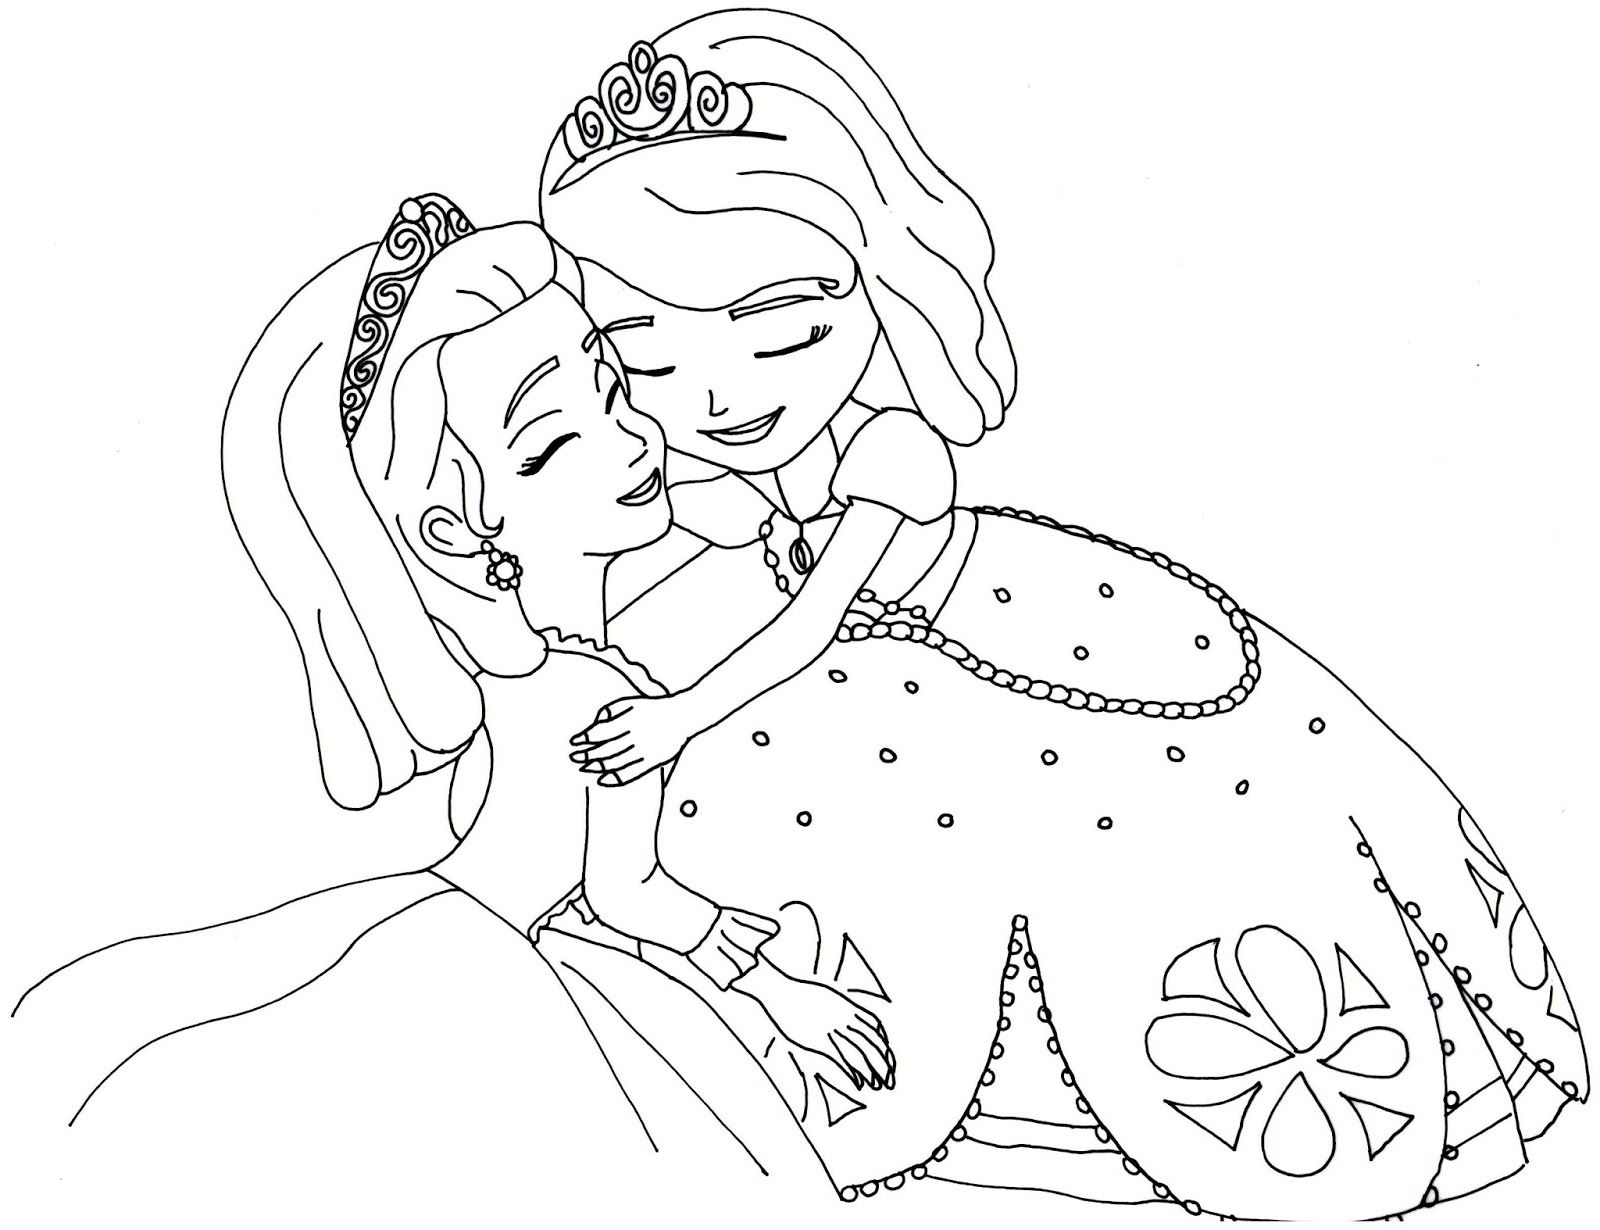 cloringpages The First Coloring Pages Sofia and Amber Hugged